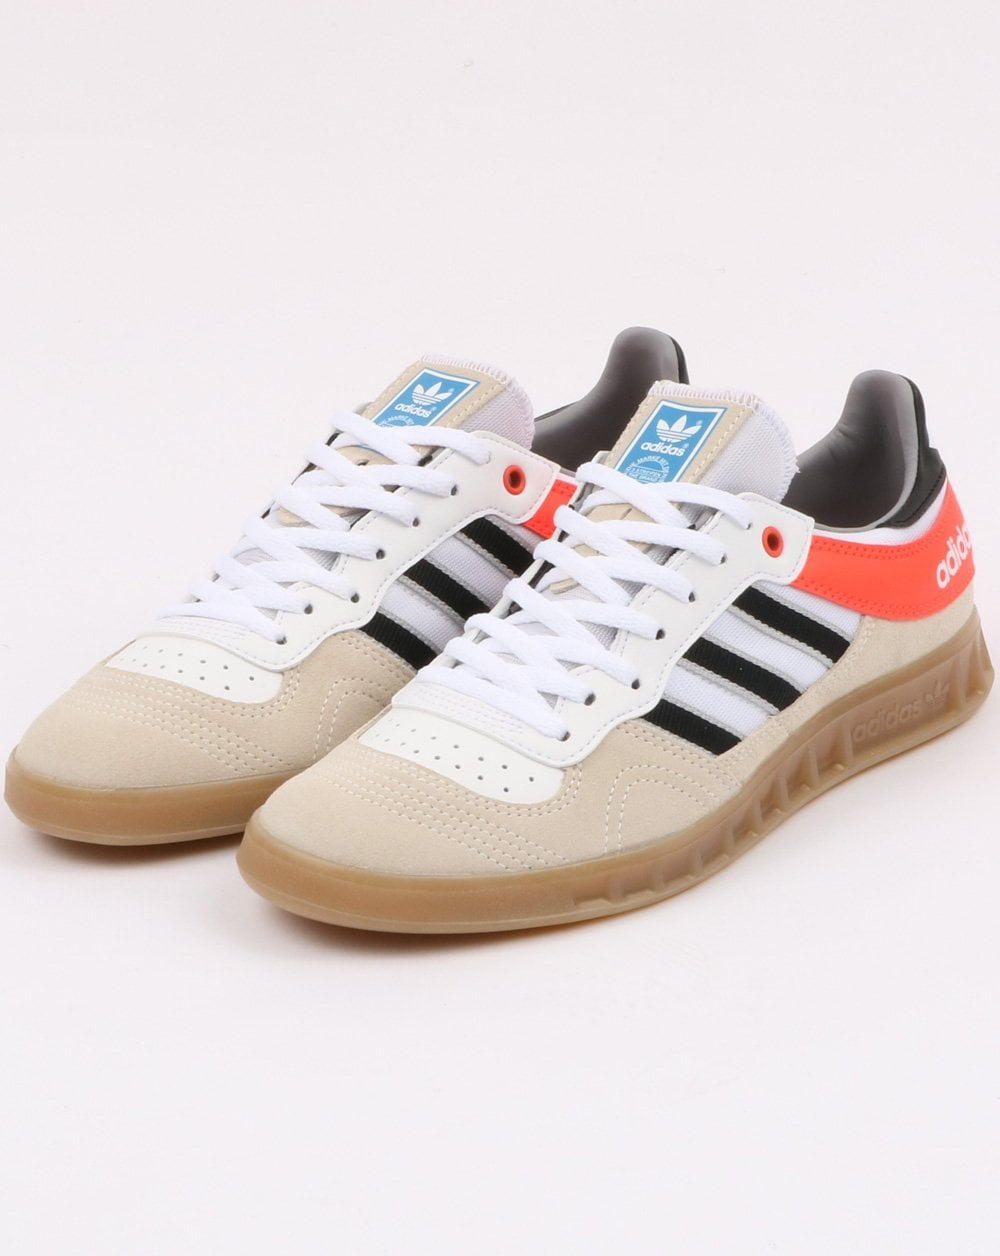 Classic 3 stripes adidas Handball Top